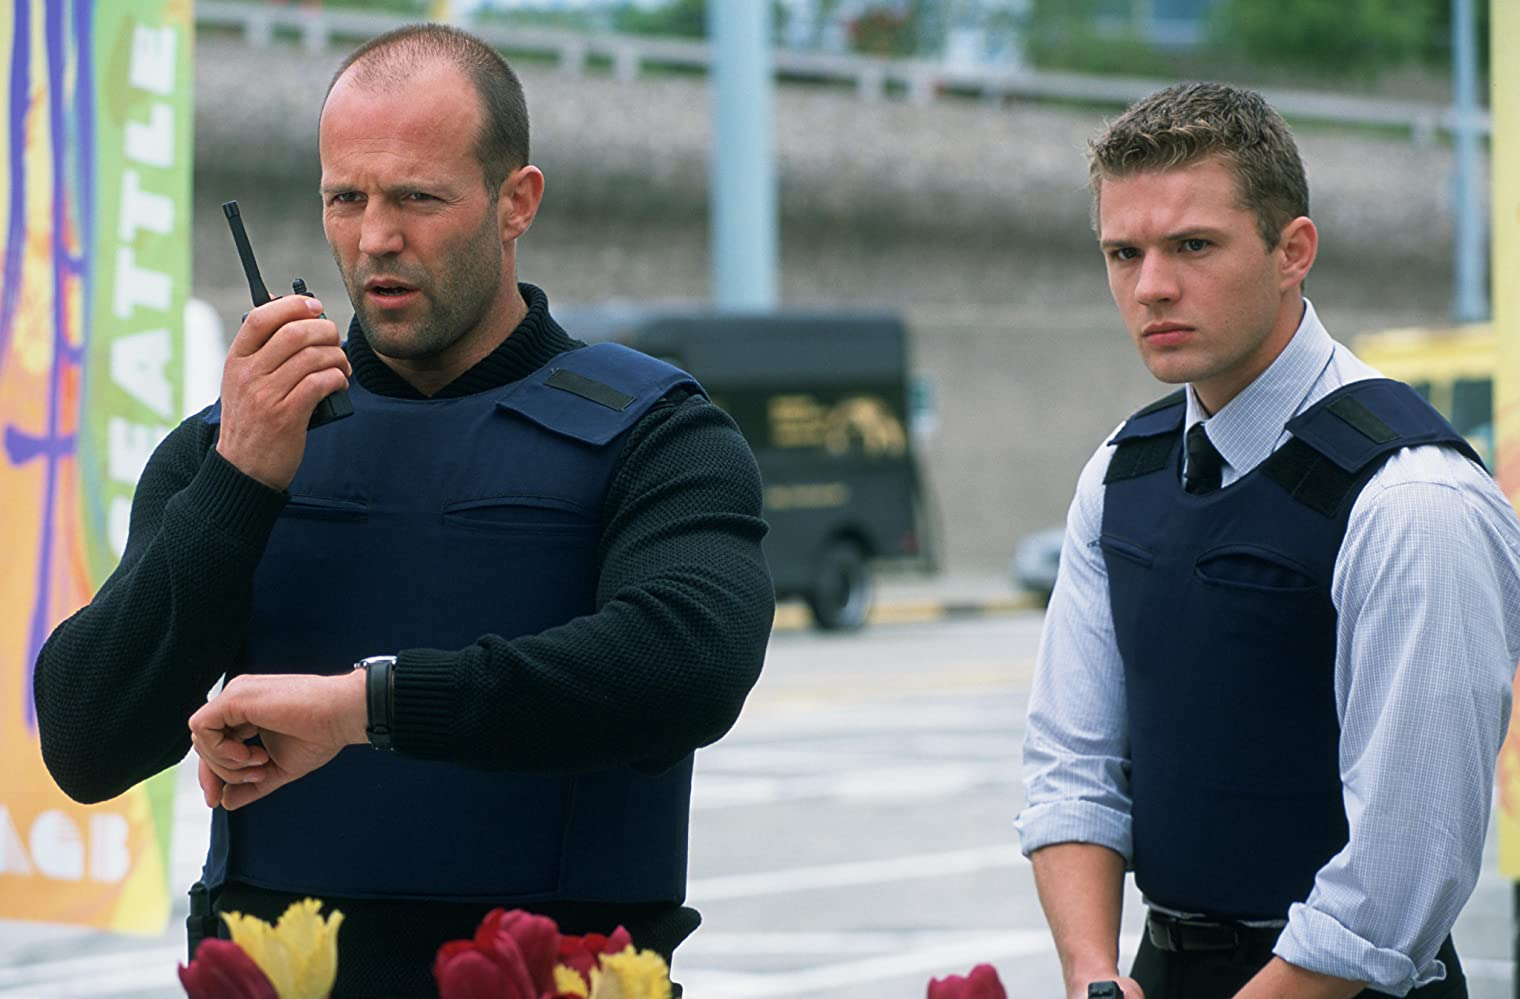 Ryan Phillippe and Jason Statham in Chaos (2005)